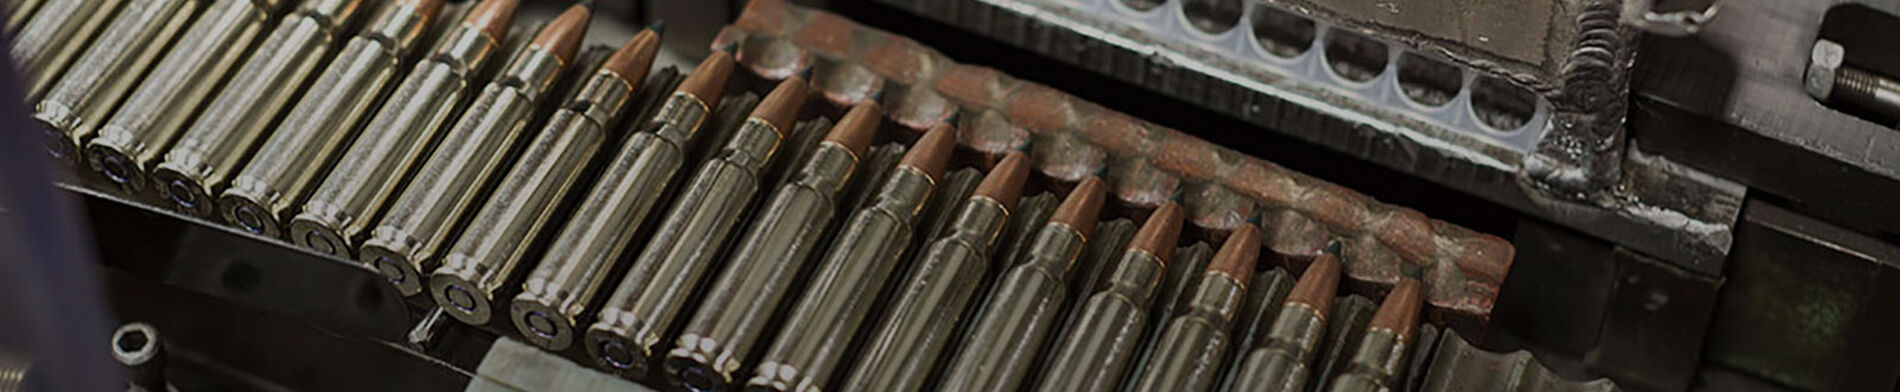 Ammunition on Conveyor